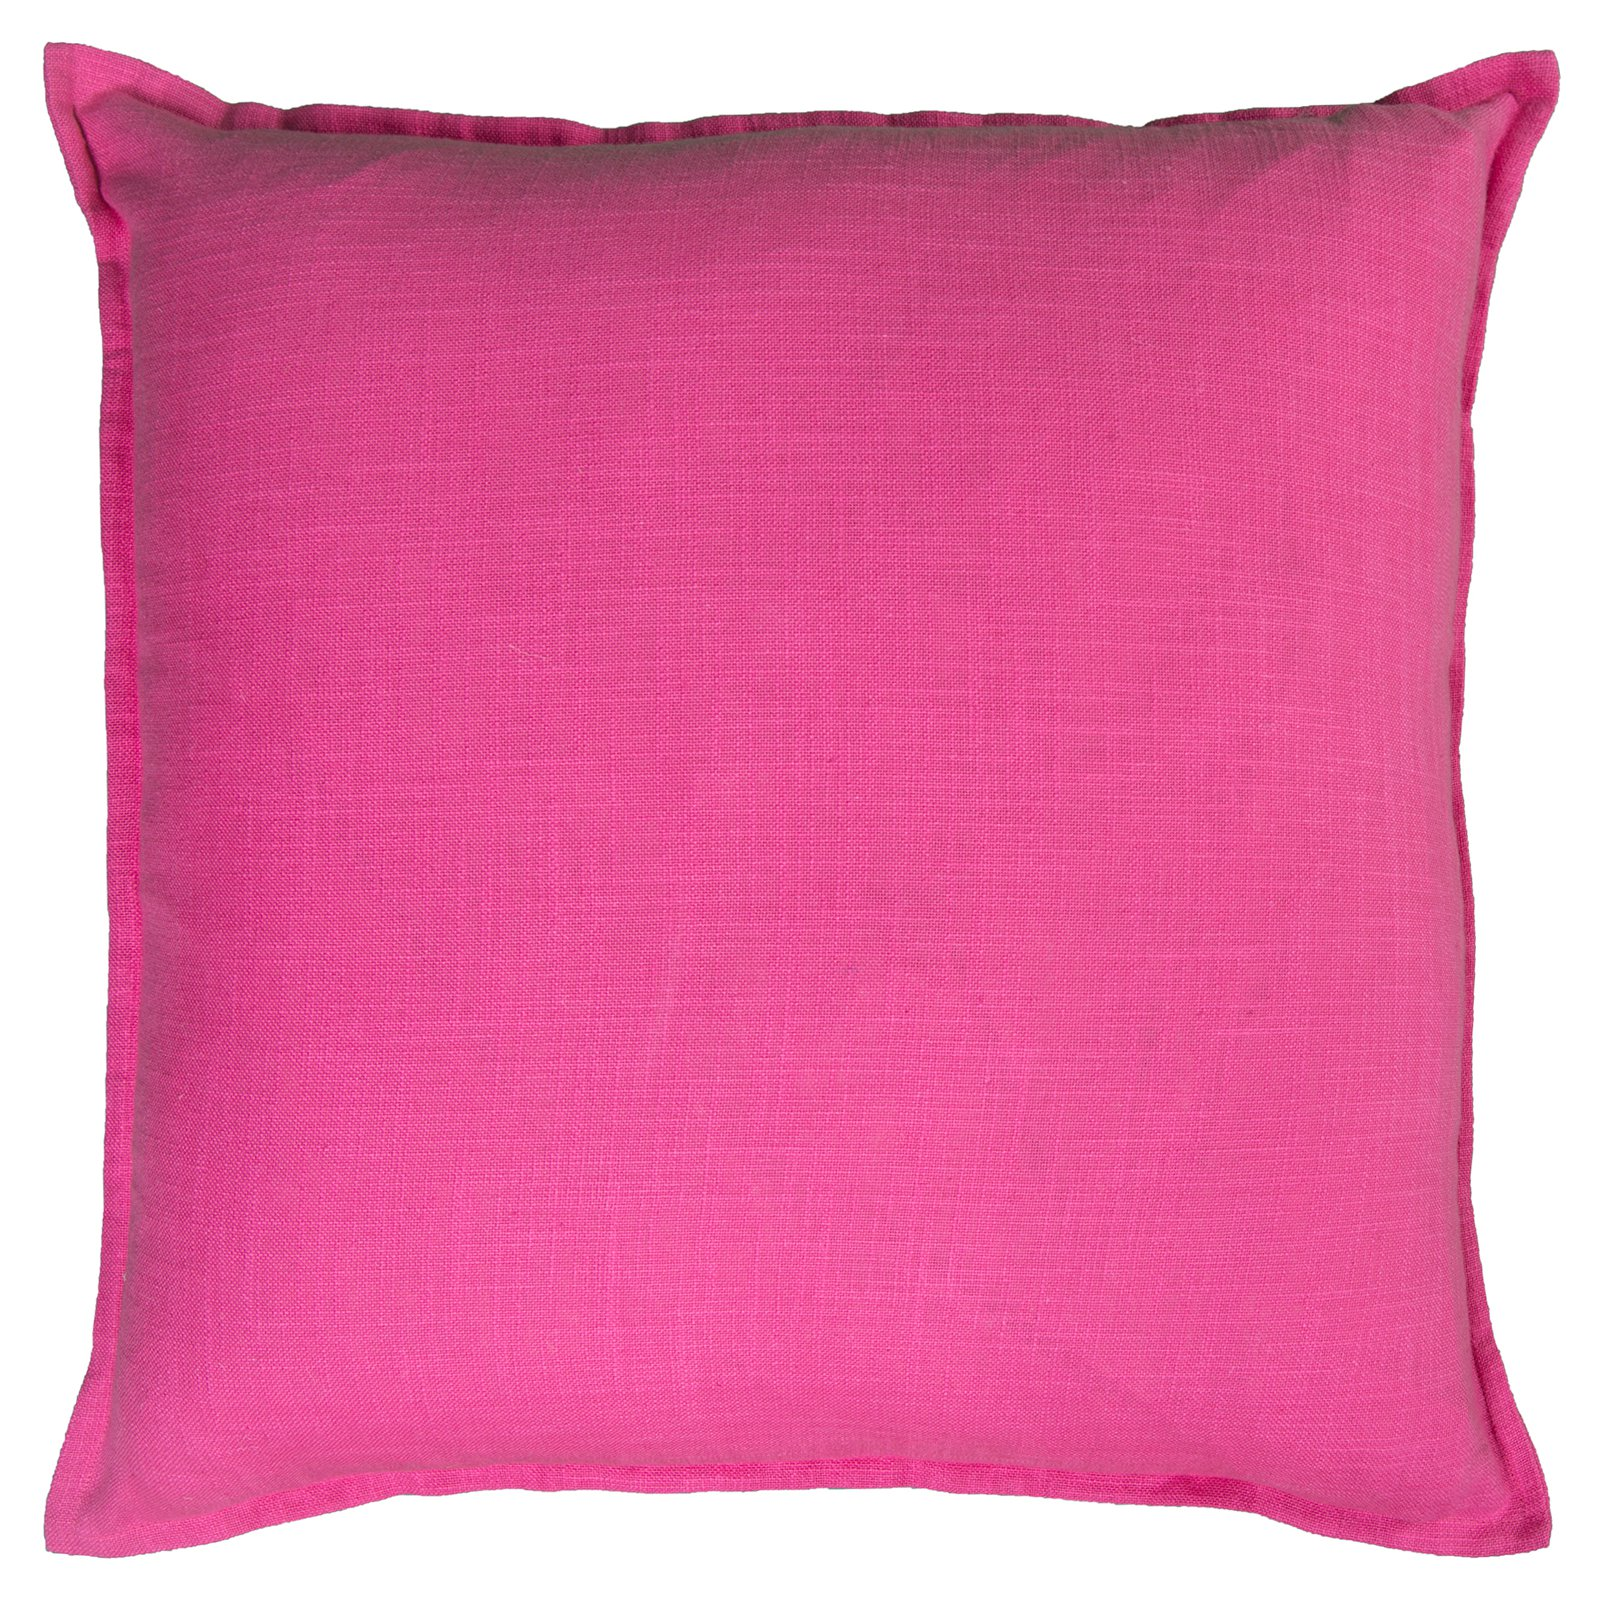 """Rizzy Home Solid Cotton Decorative Throw Pillow, 20"""" x 20"""", Hot Pink"""